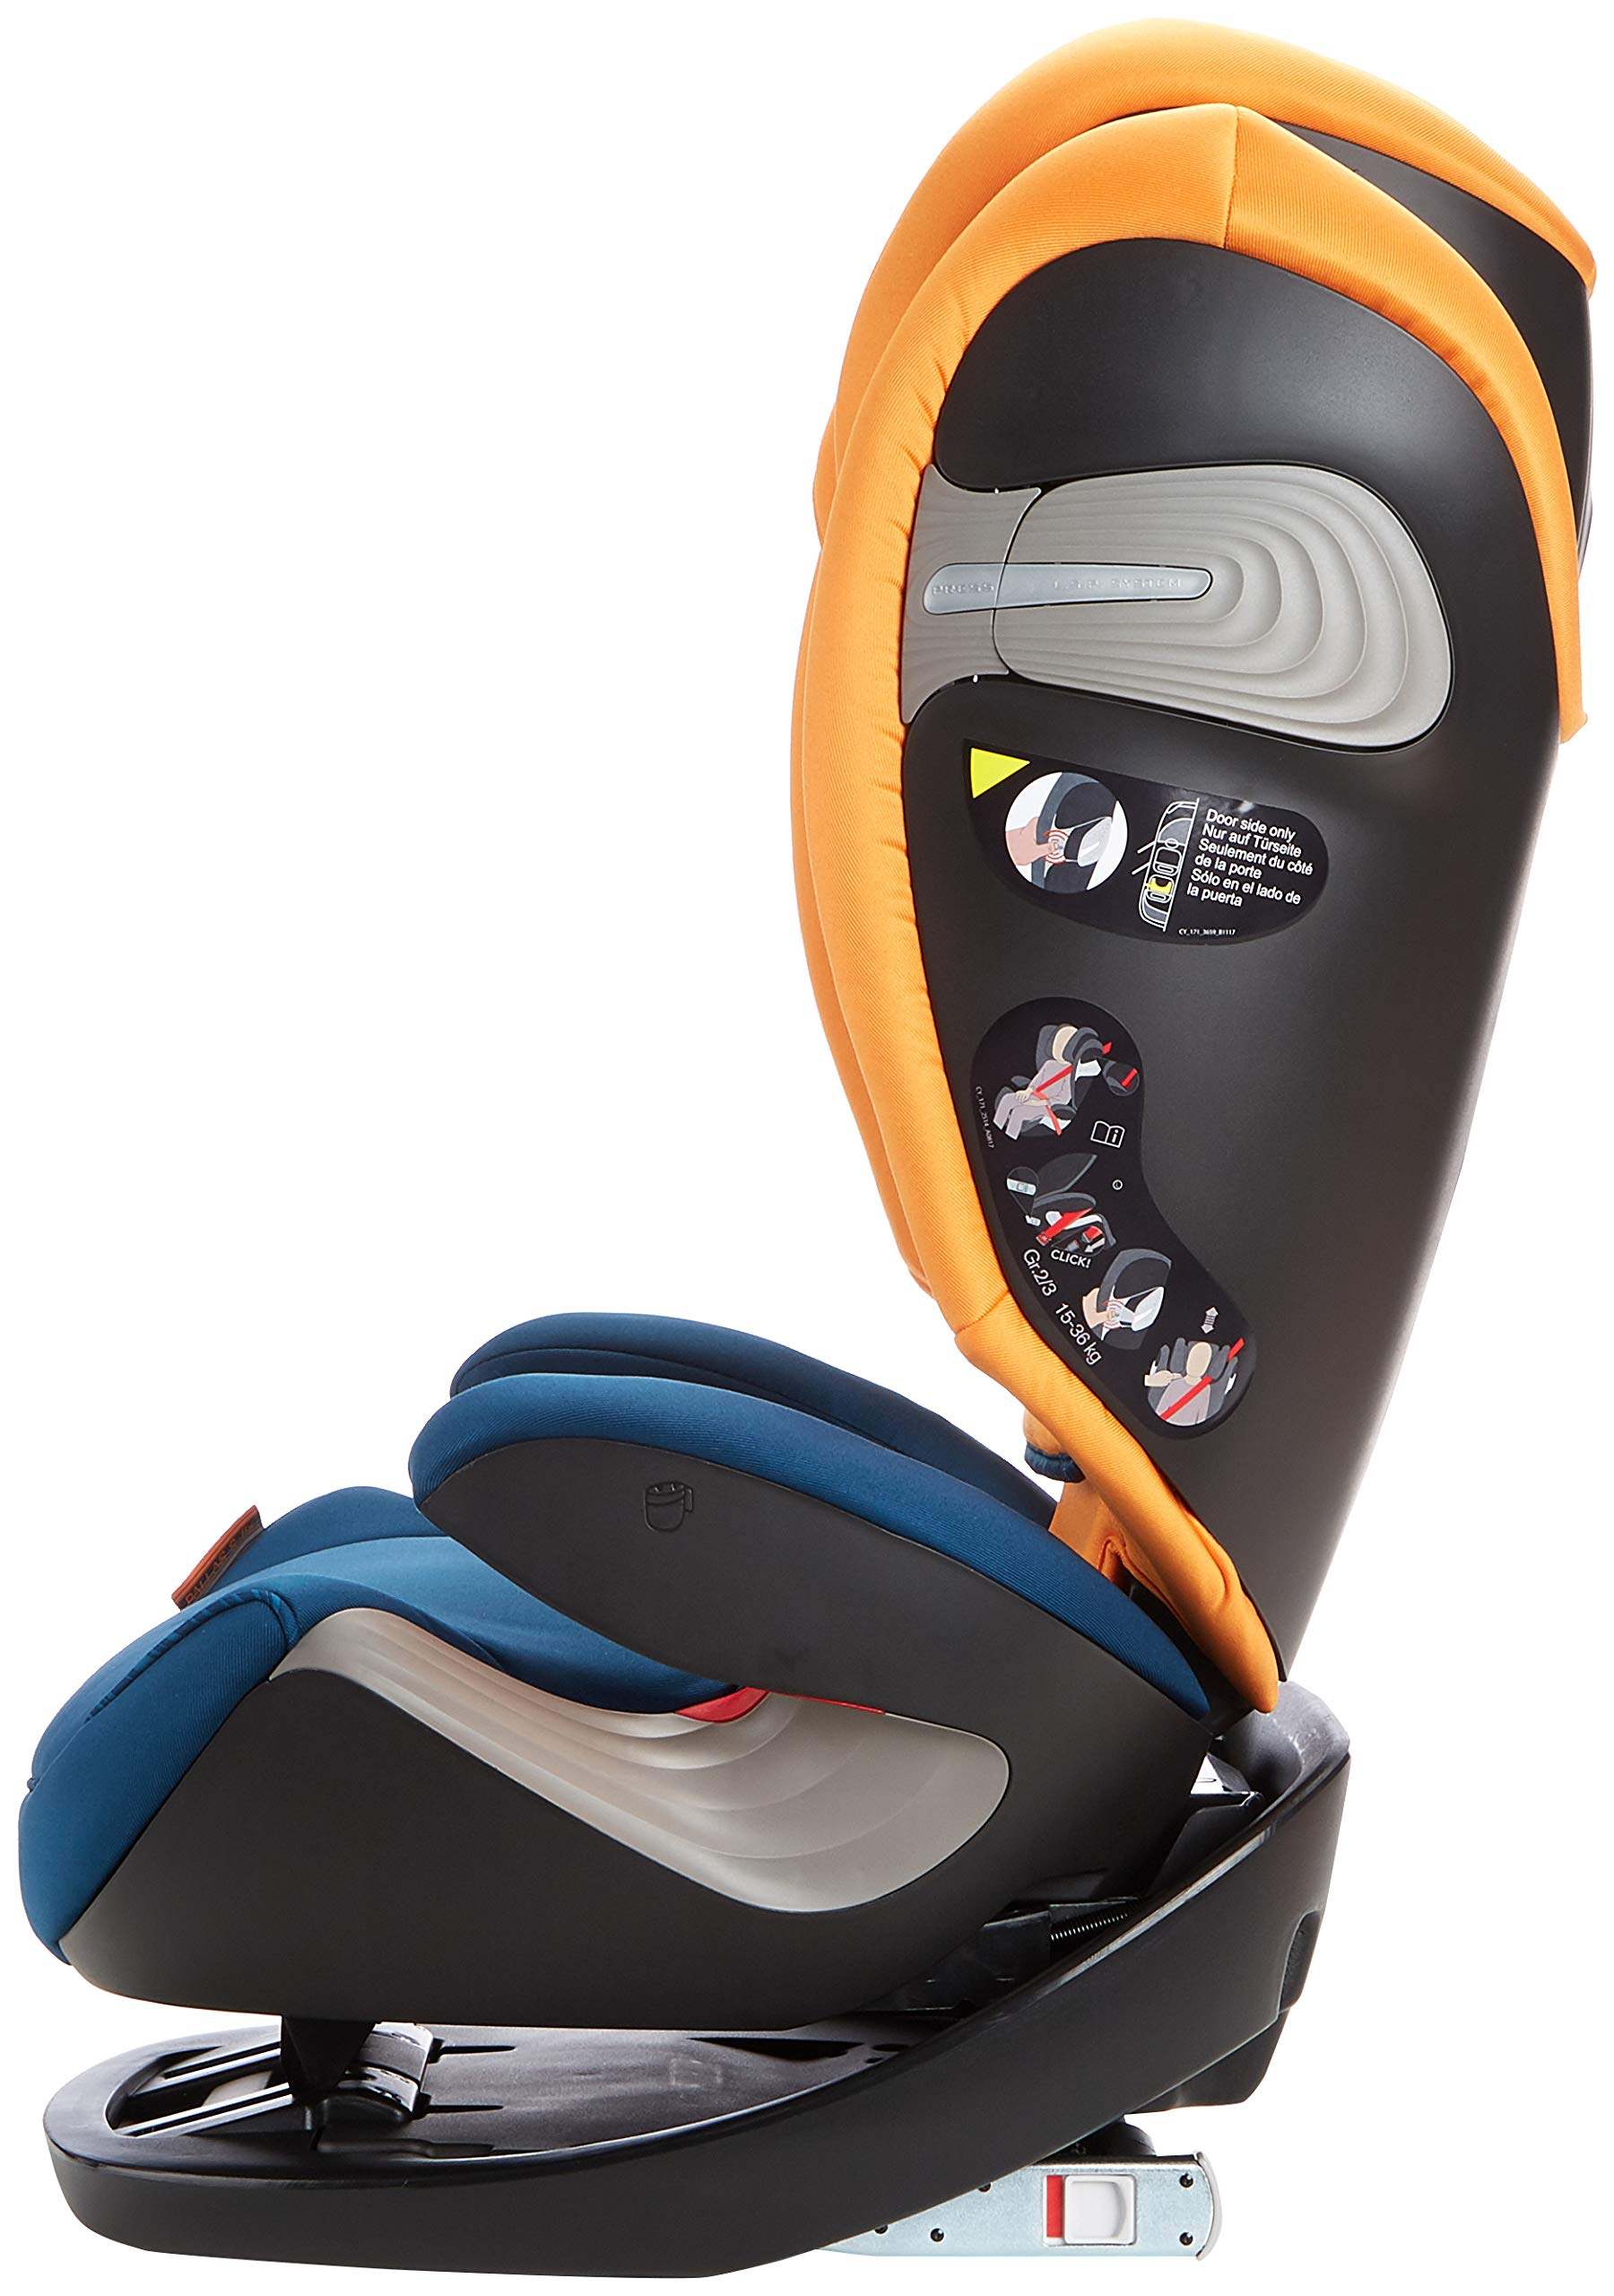 CYBEX Gold Pallas S-Fix 2-in-1 Child's Car Seat, For Cars with and without ISOFIX, Group 1/2/3 (9-36 kg), From approx. 9 Months to approx. 12 Years, Tropical Blue Cybex Sturdy and high-quality child car seat for long-term use - For children aged approx. 9 months to approx. 12 years (9-36 kg), Suitable for cars with and without ISOFIX Maximum safety - Depth-adjustable impact shield, 3-way adjustable reclining headrest, Built-in side impact protection (L.S.P. System), Energy-absorbing shell 12-way height-adjustable comfort headrest, One-hand adjustable reclining position, Easy conversion to Solution S-Fix car seat for children 3 years and older (group 2/3) by removing impact shield and base 4